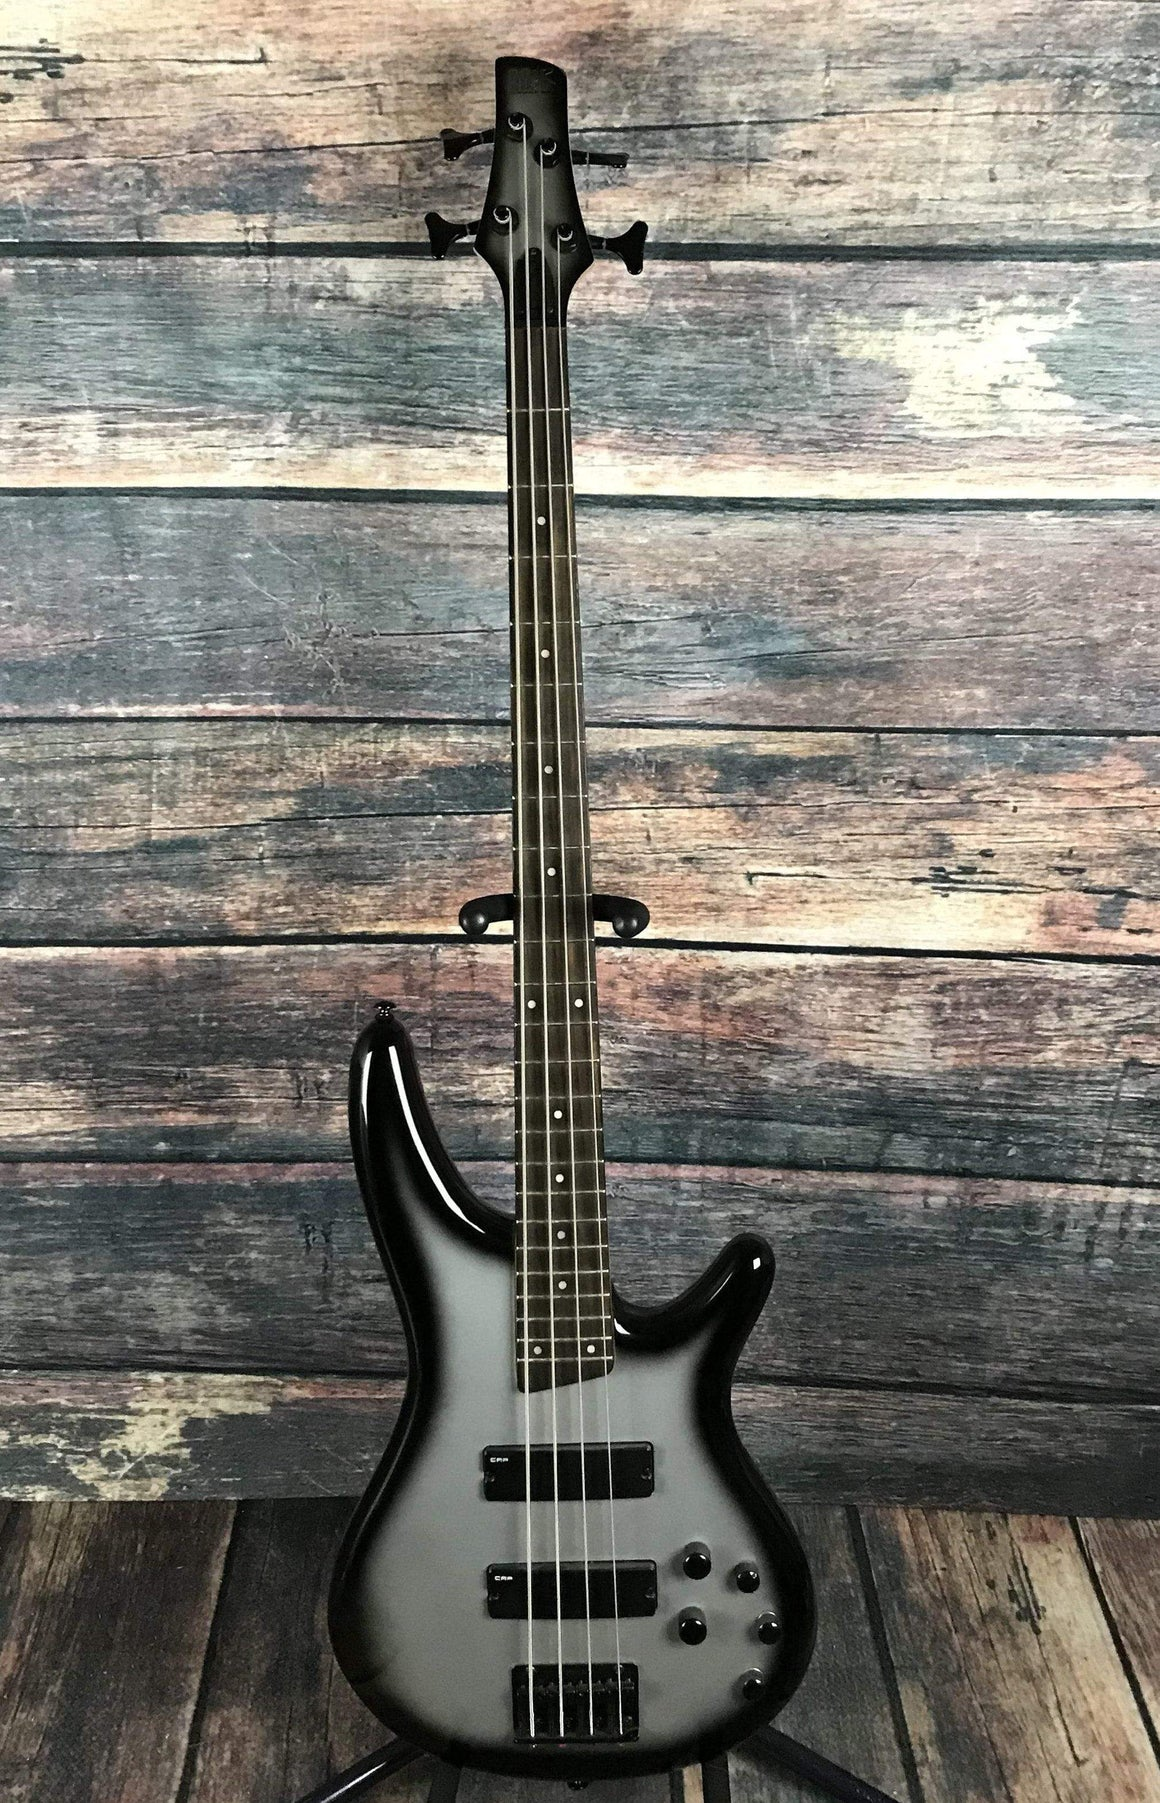 Ibanez Electric Bass Used Ibanez SR250 Sound Gear 4 String Electric Bass with Gig Bag- Silverburst